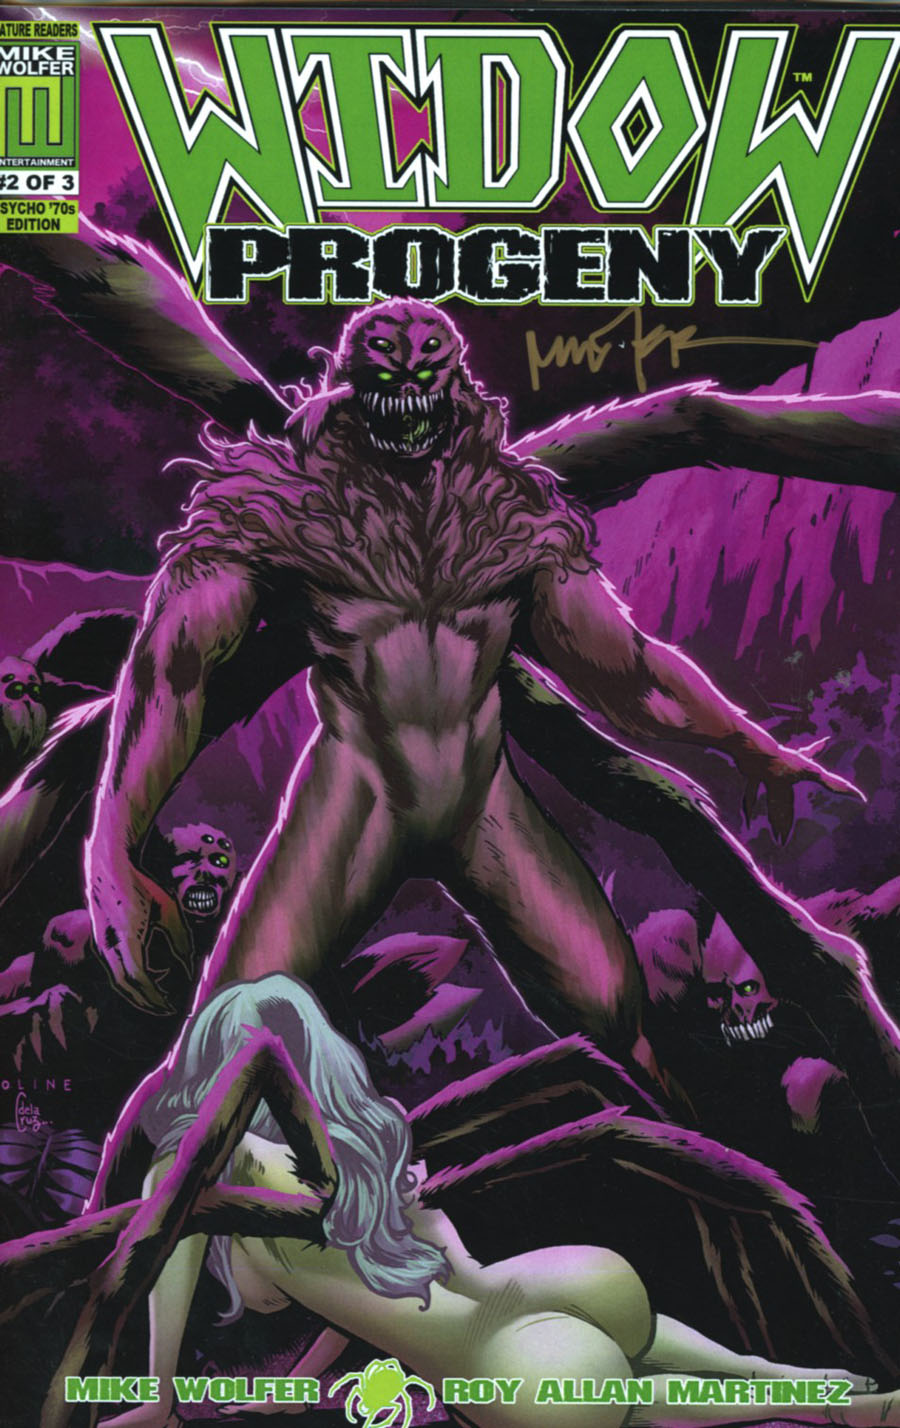 Widow Progeny #2 Cover B Variant Psycho 70s Cover Package